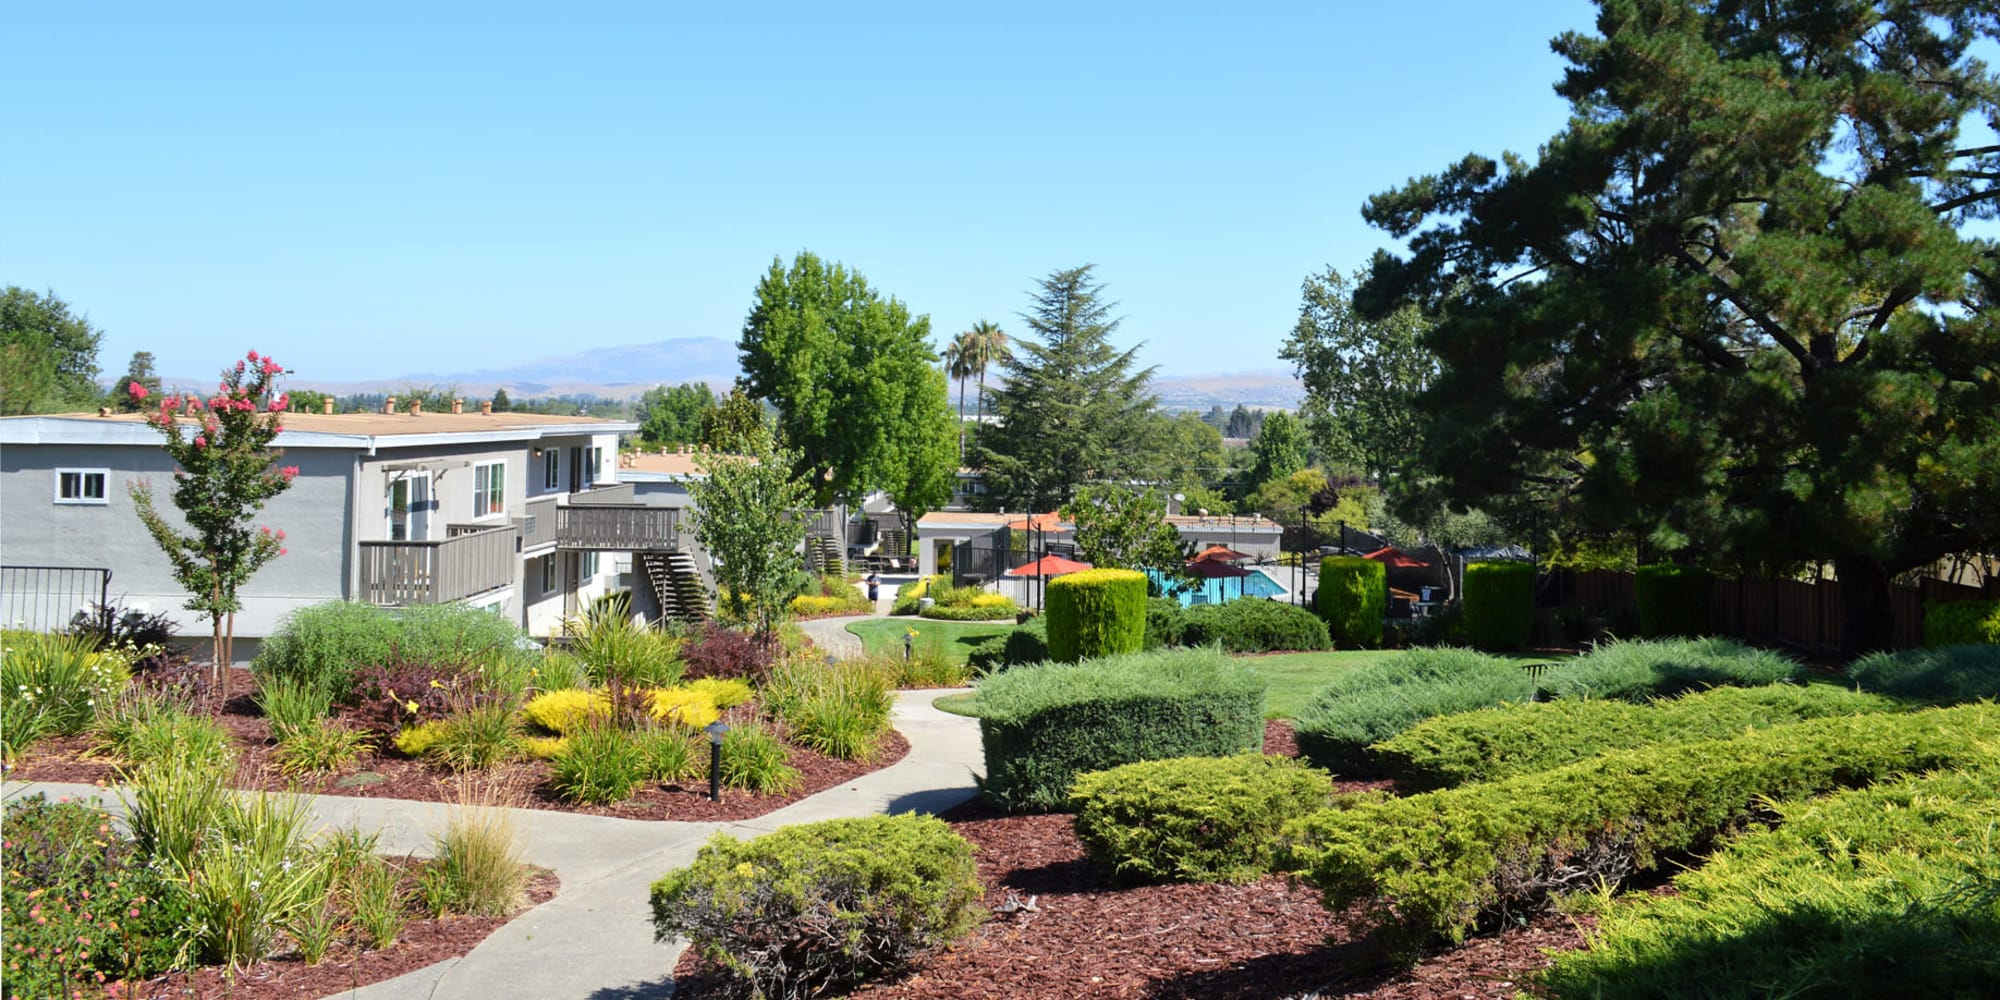 Mature trees and beautifully manicured landscaping at Pleasanton Heights in Pleasanton, California